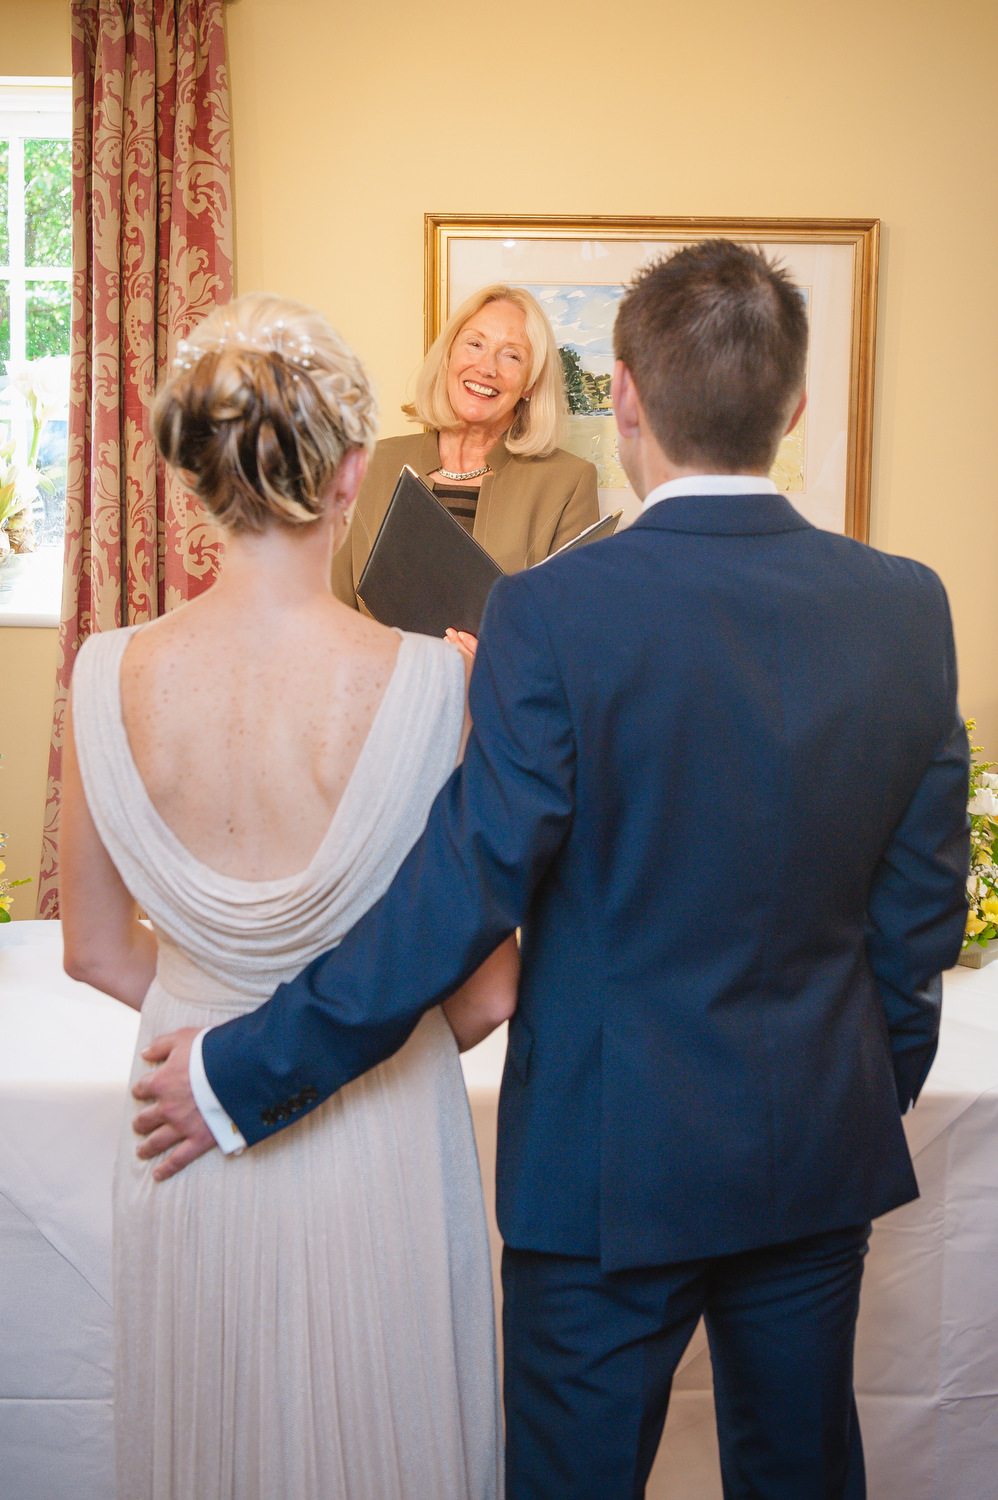 charnwood_weddings_barnsdale_lodge_rutland_dave_j101ane.JPG